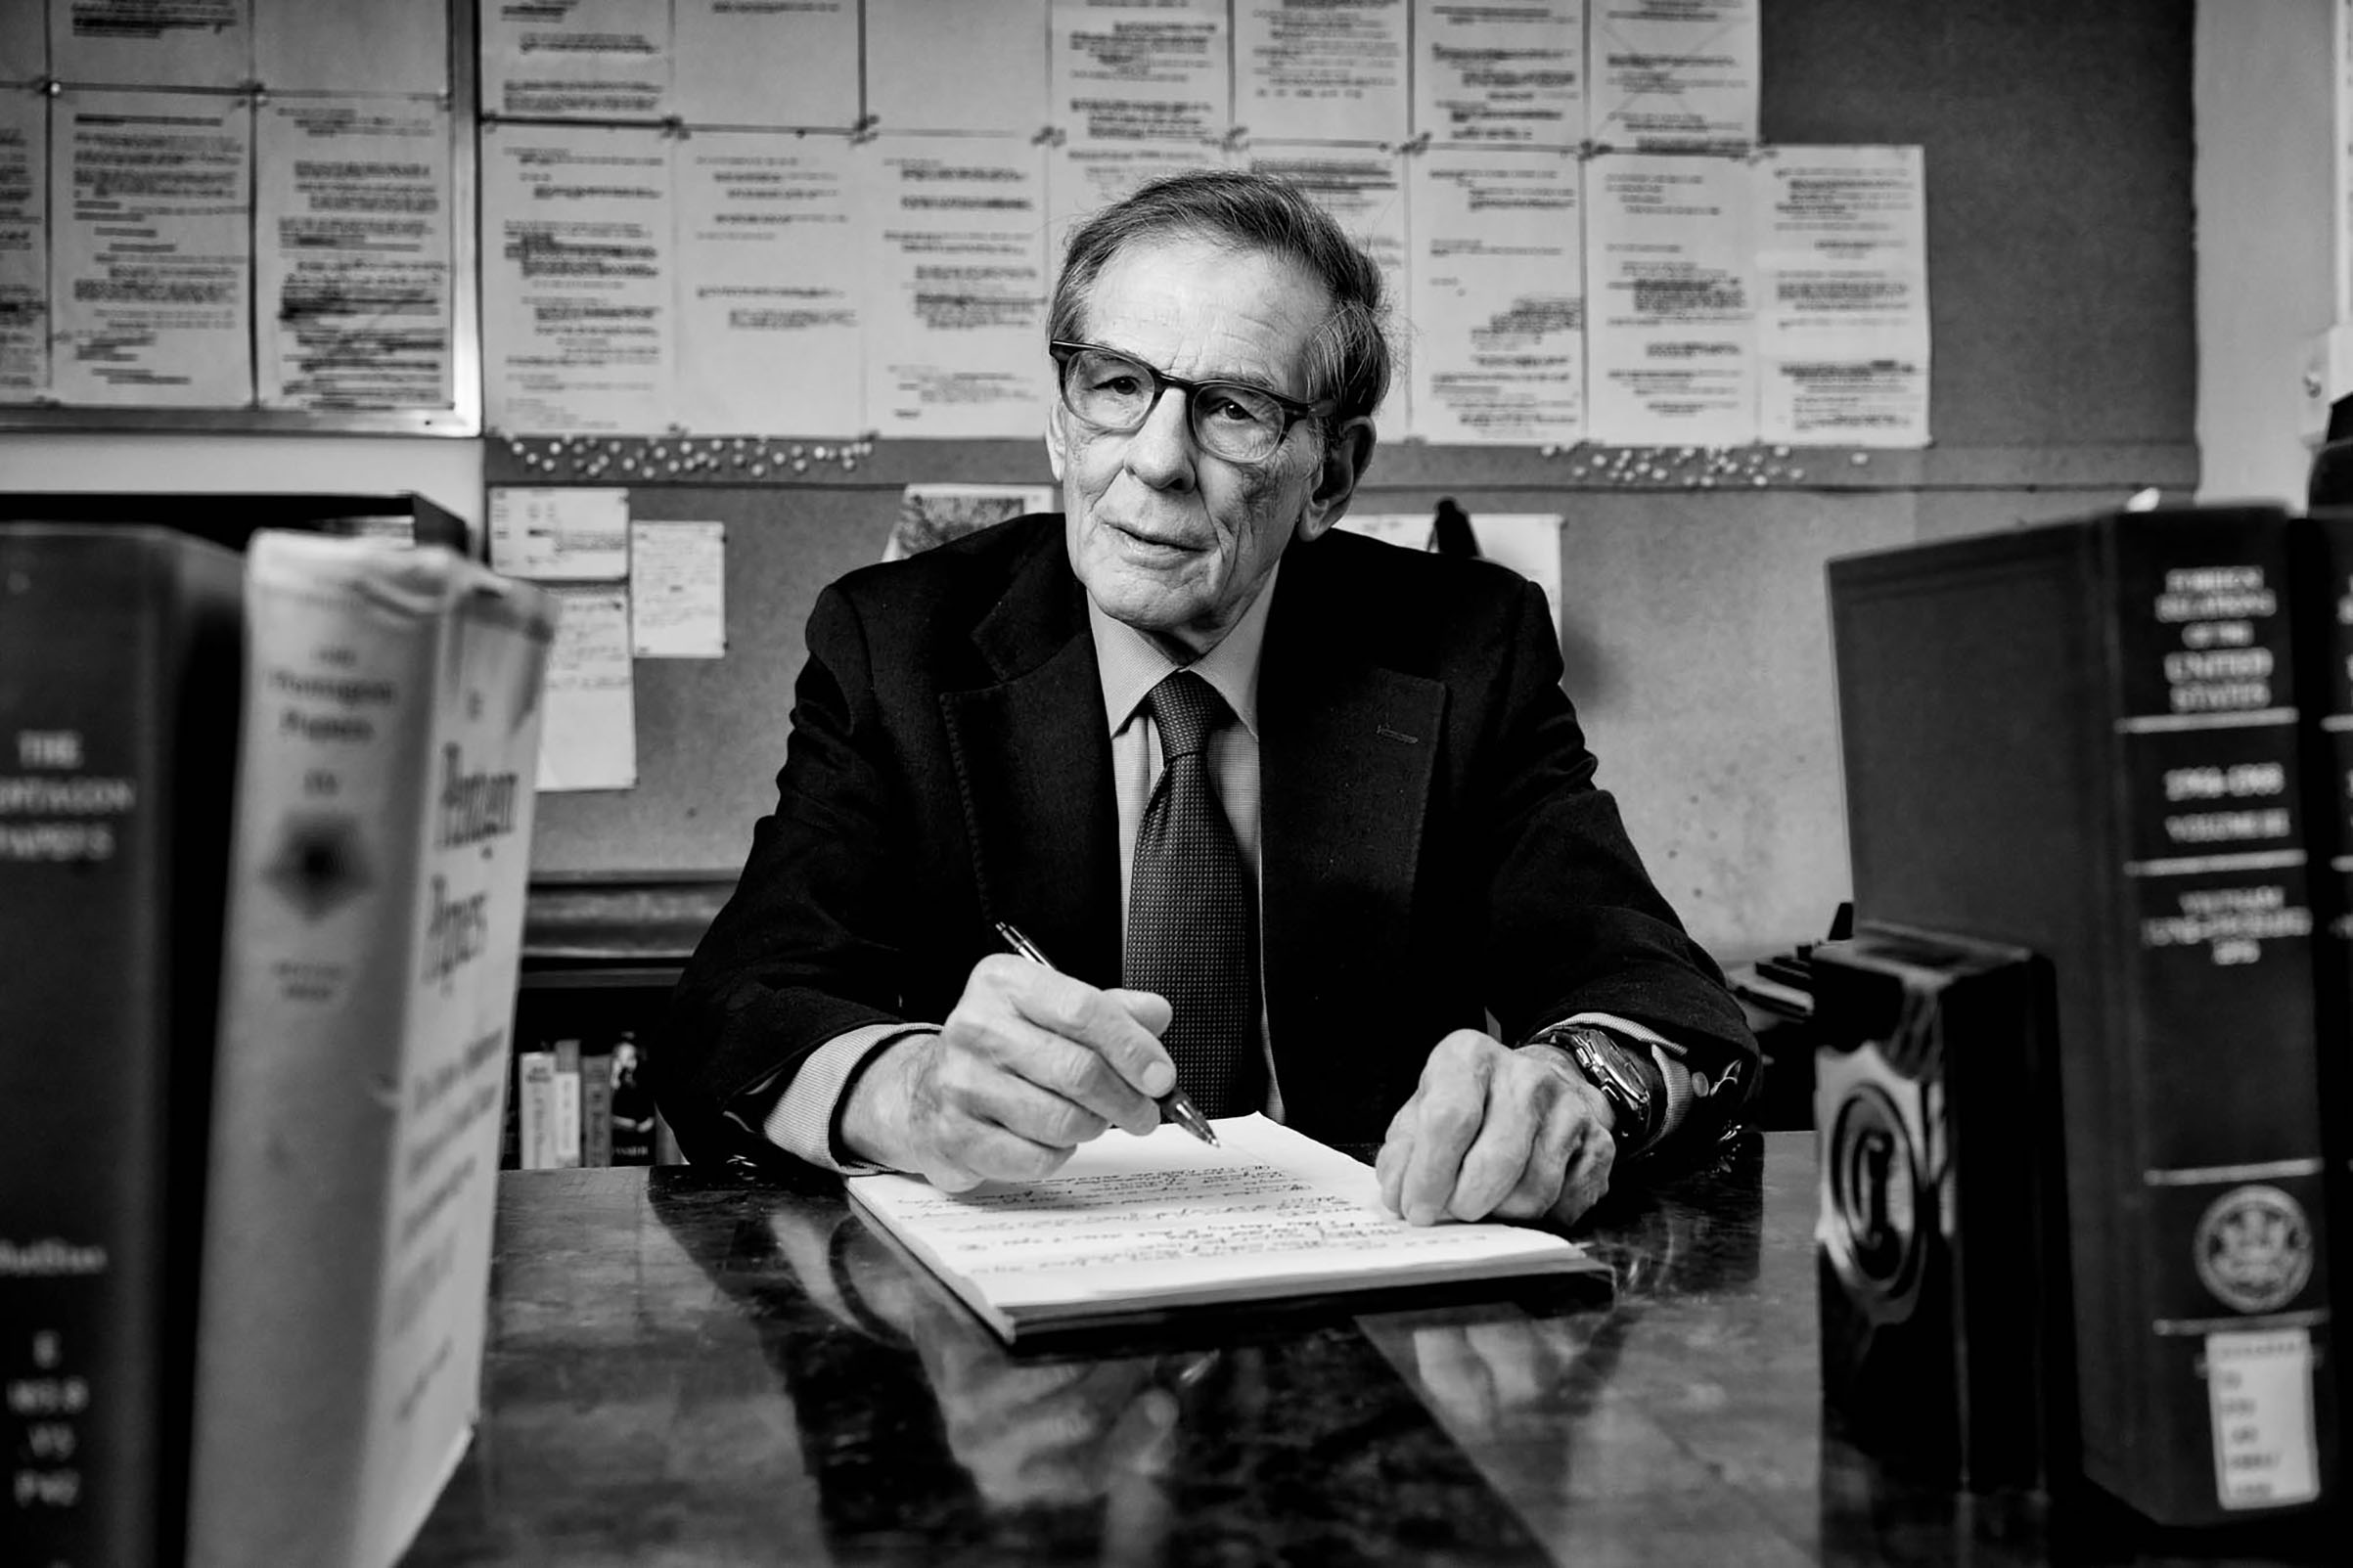 'I was always too fast, and wanted to make myself think things all the way through.' —Robert Caro, on his work habits